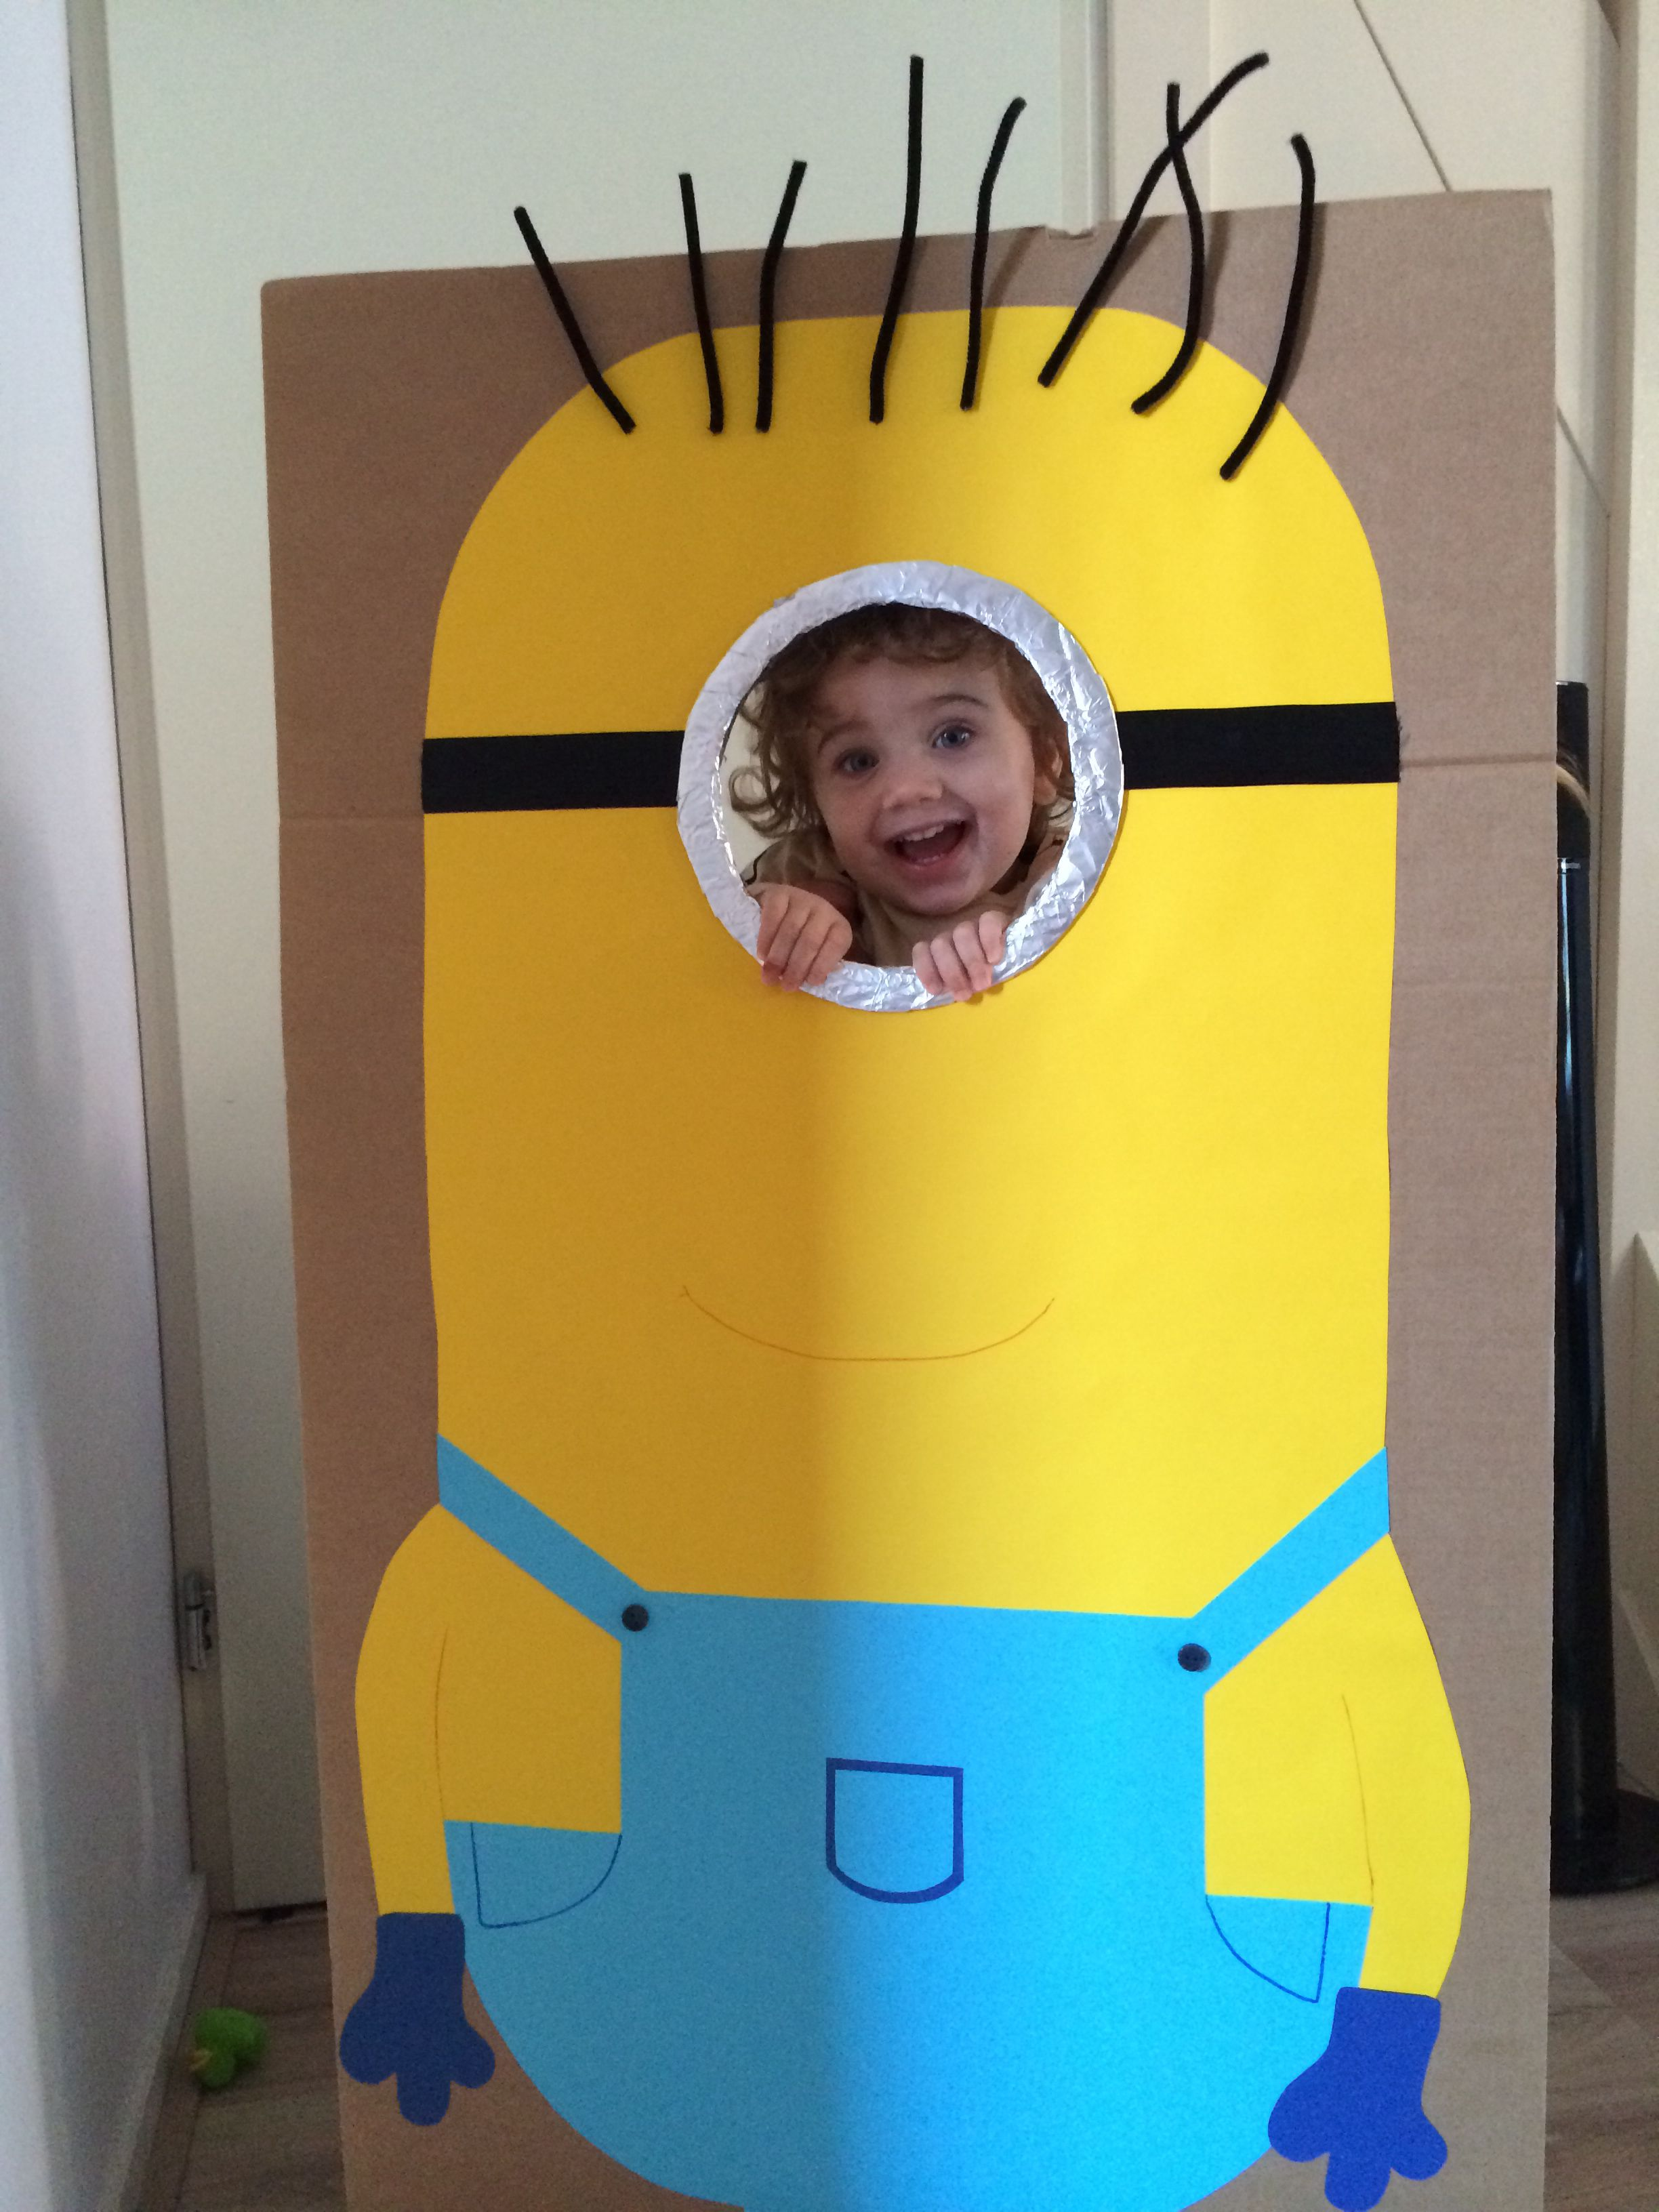 minion photo booth selfmade from cardboard activit s enfants pinterest minions. Black Bedroom Furniture Sets. Home Design Ideas